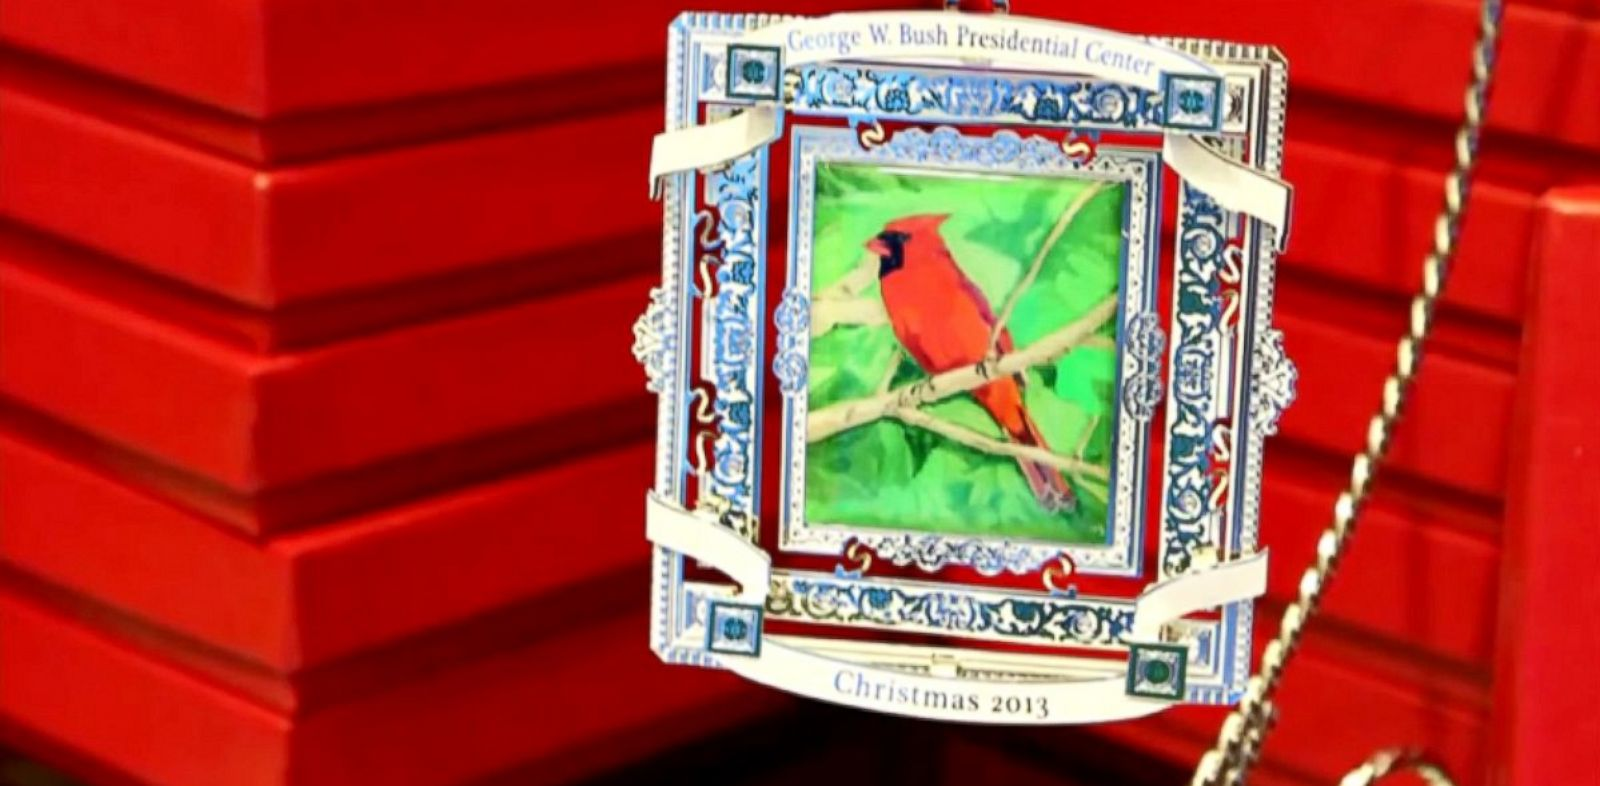 PHOTO: The 2013 Bush Center Ornament, features artwork by President George W. Bush.